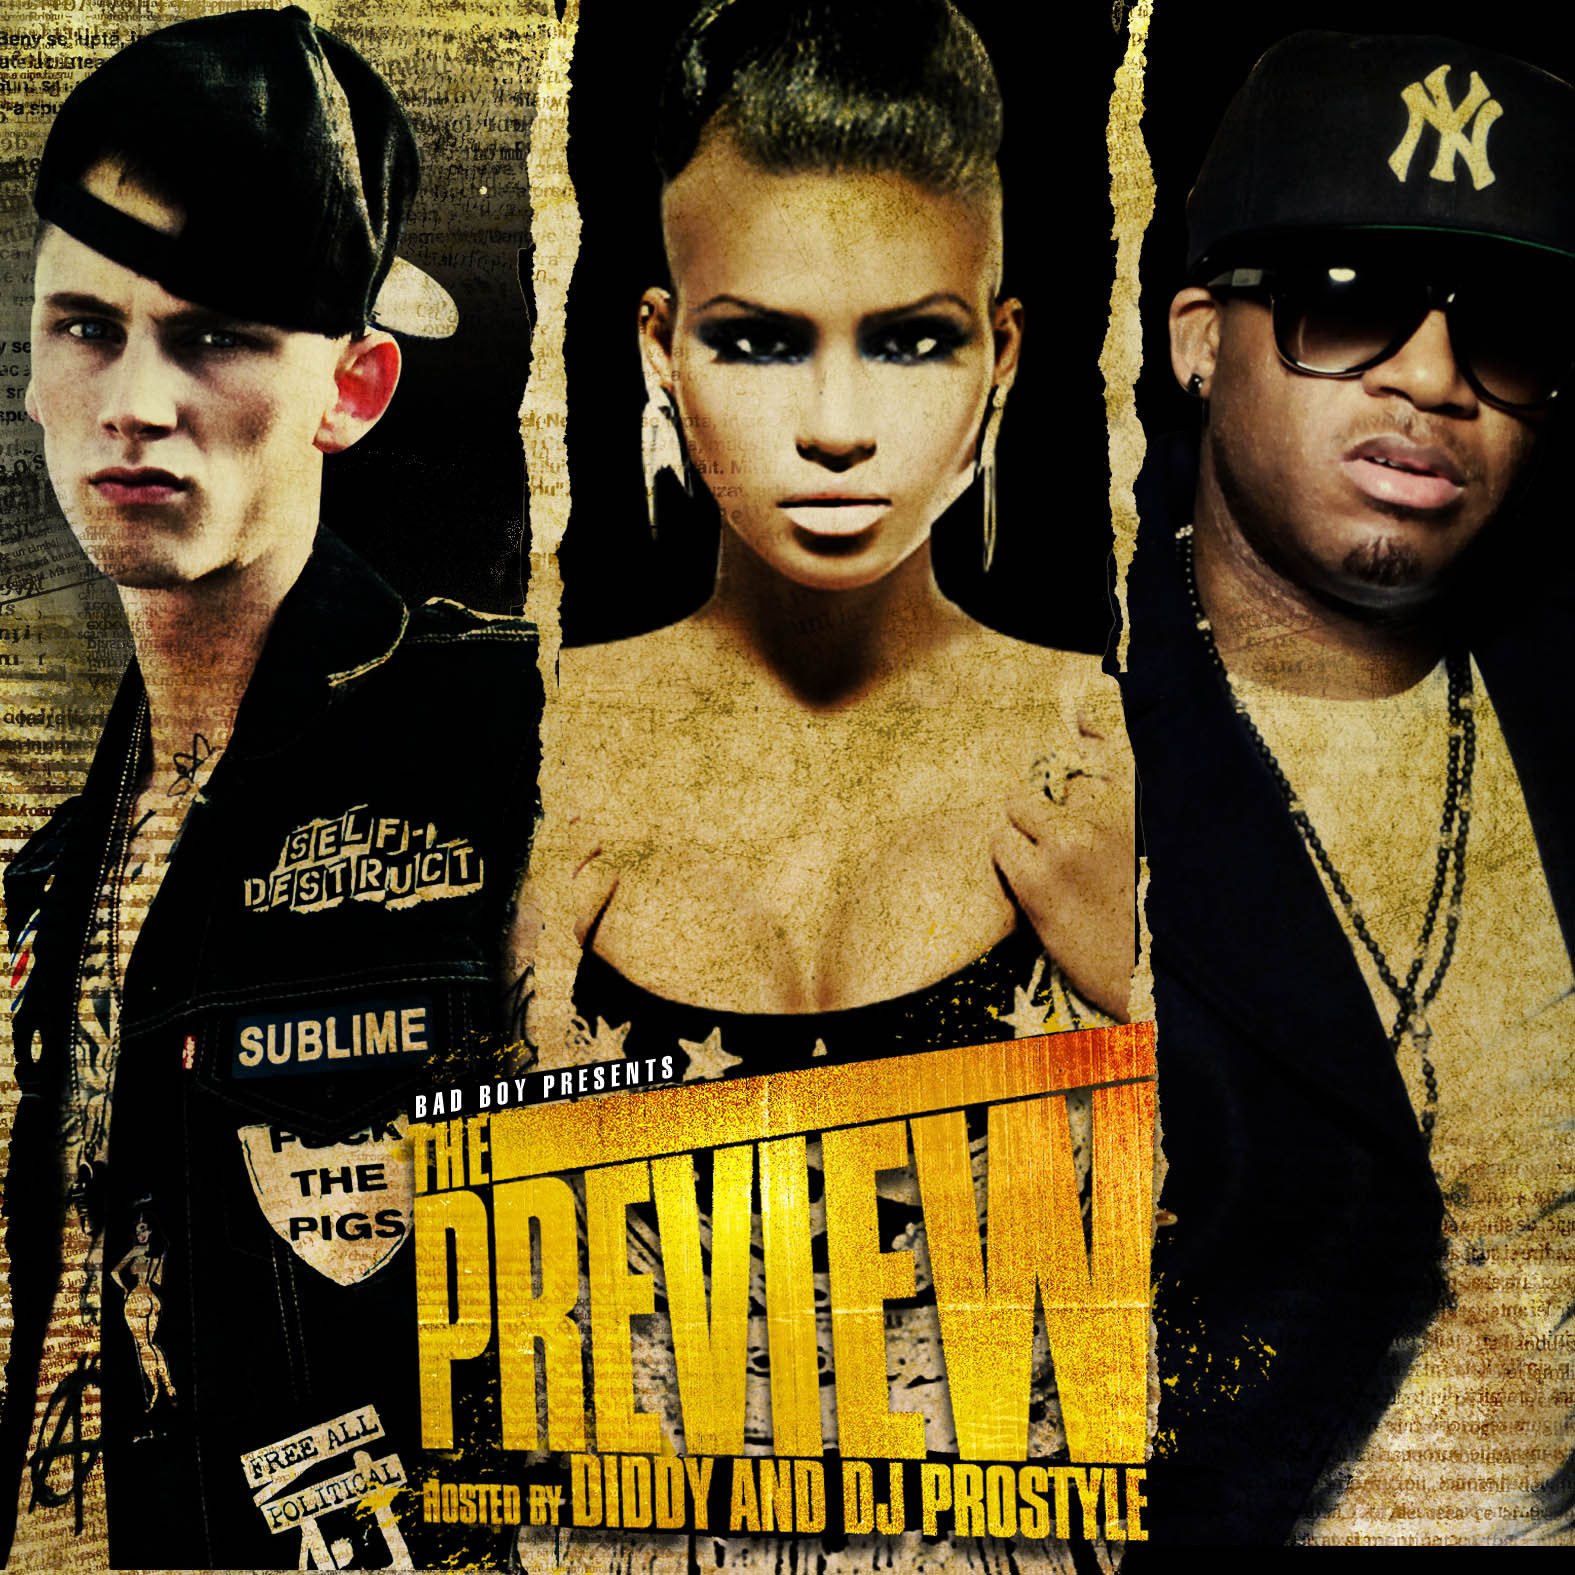 Bad Boy Presents – The Preview Hosted By Diddy and DJ Prostyle